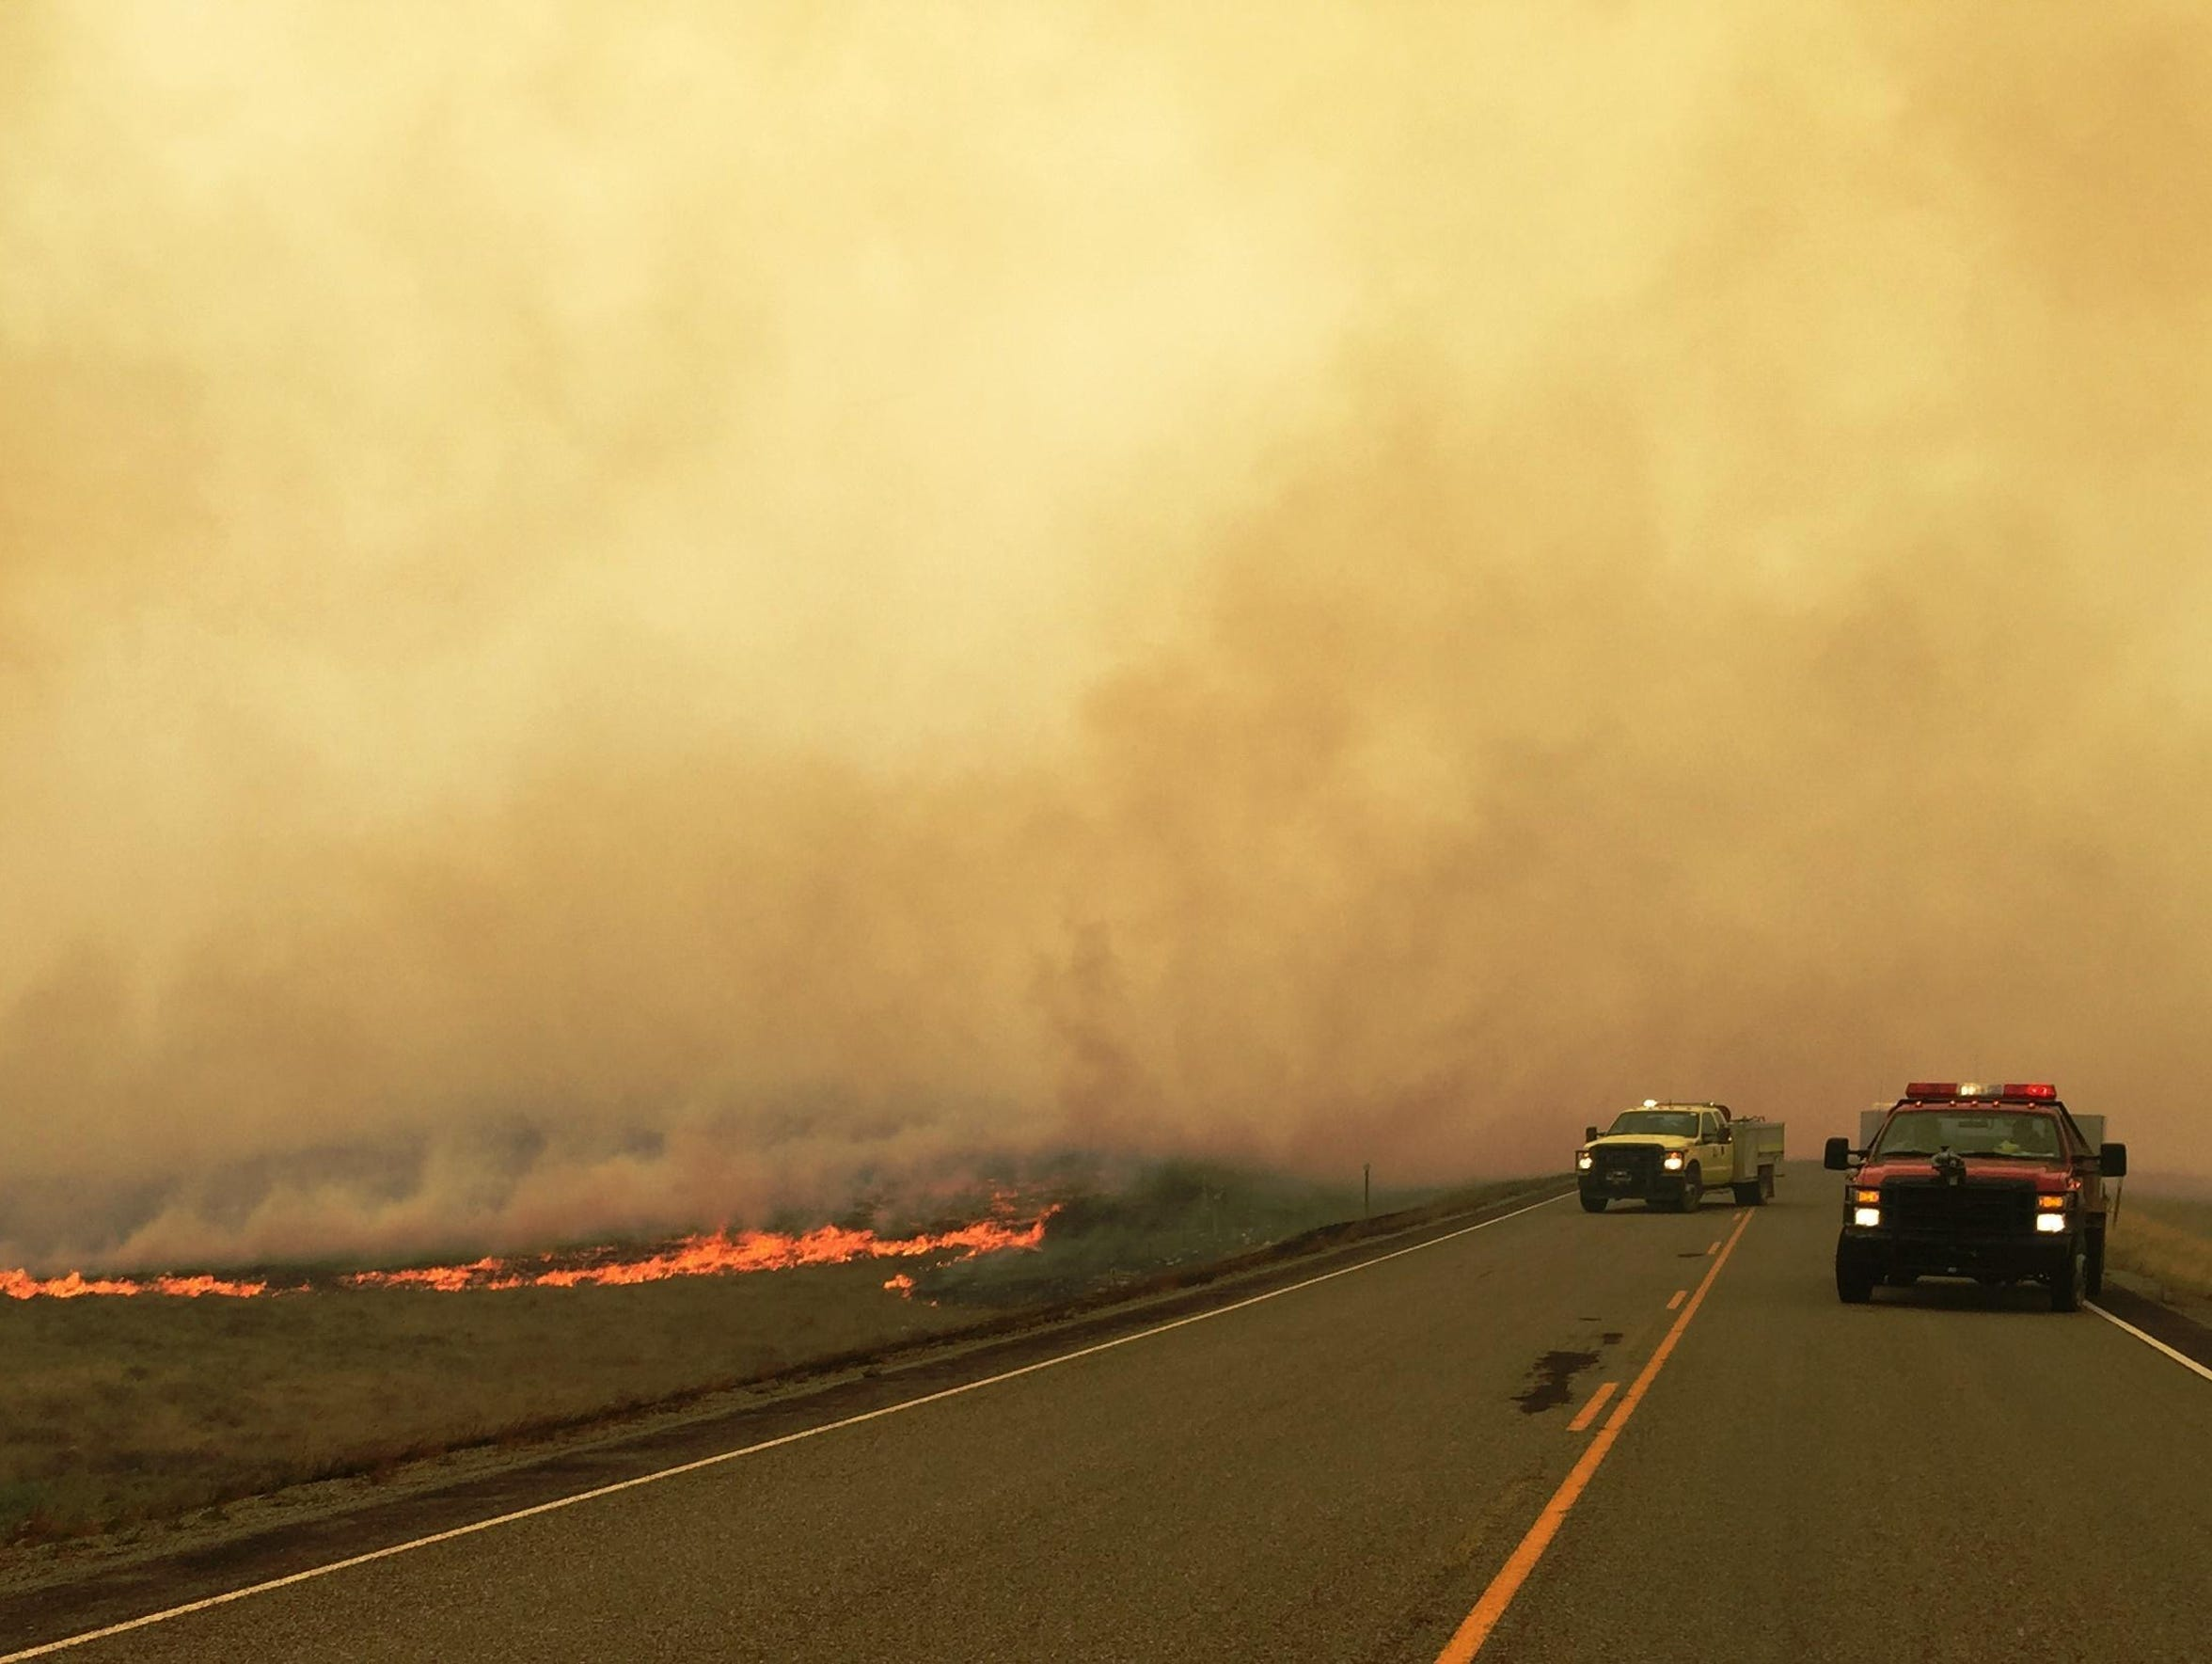 The Spotted Eagle fire reaches Highway 1, the main